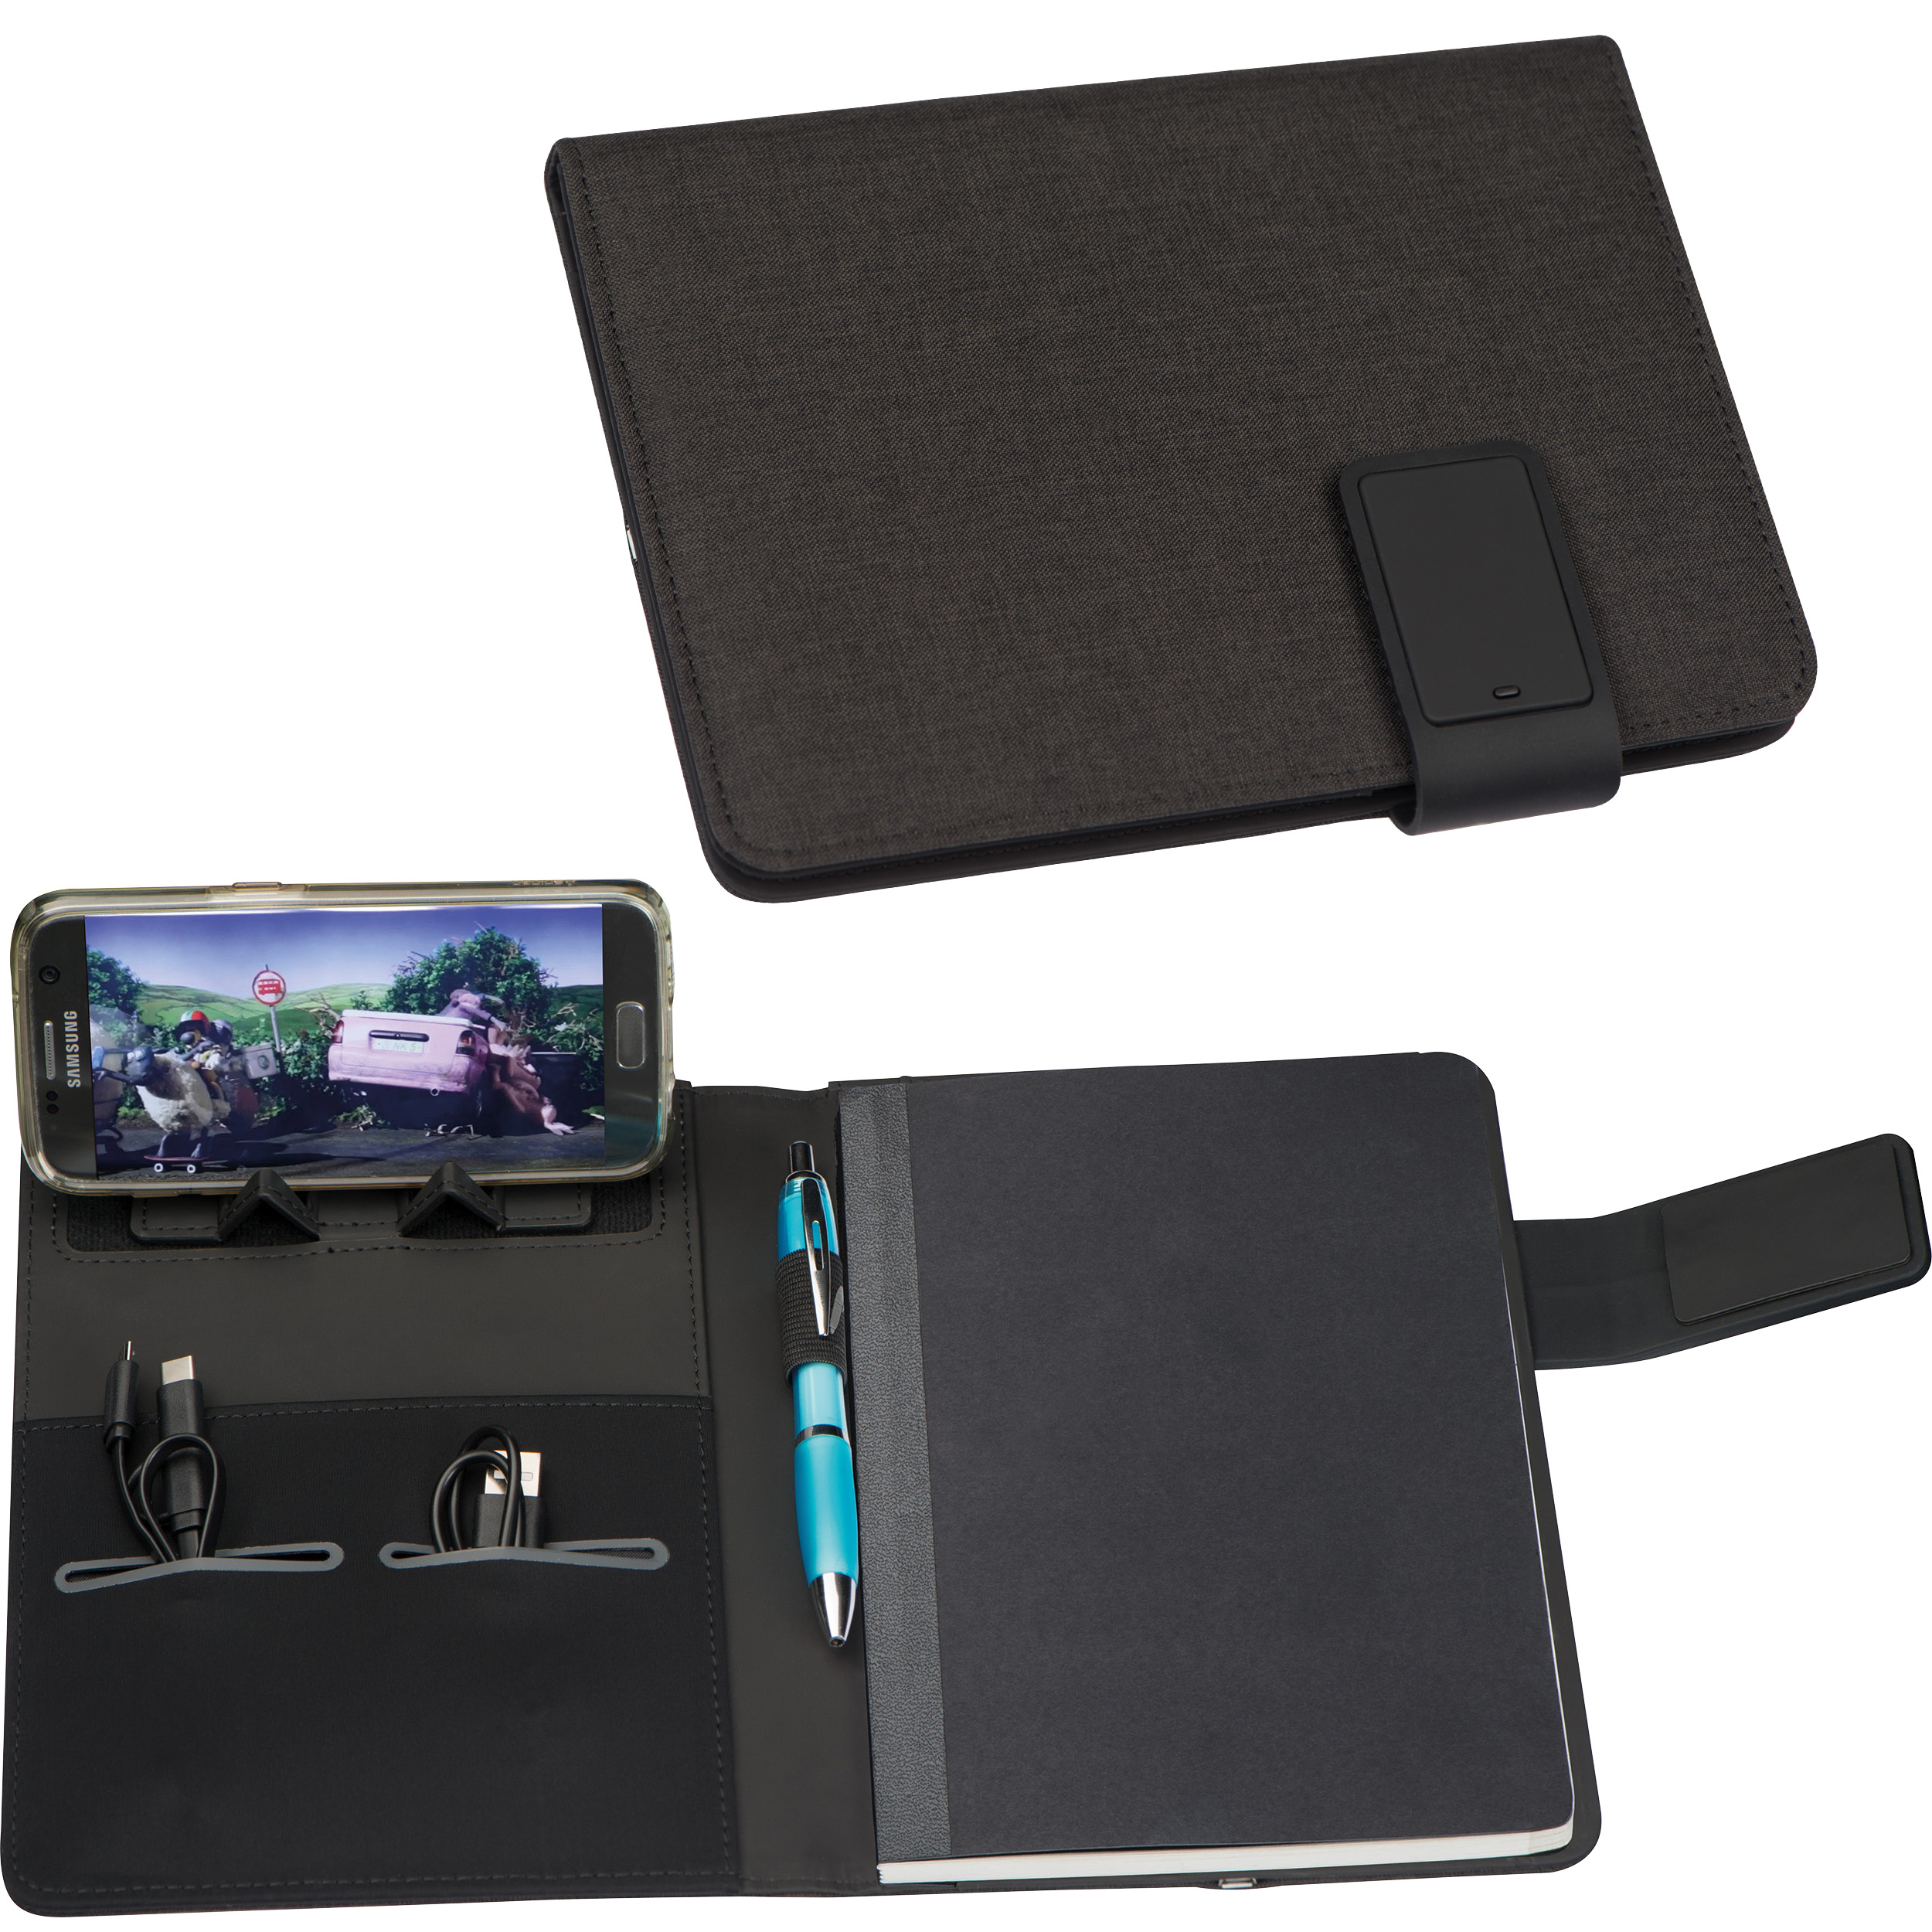 DIN A5 notebook with integrated LED light and powerbank